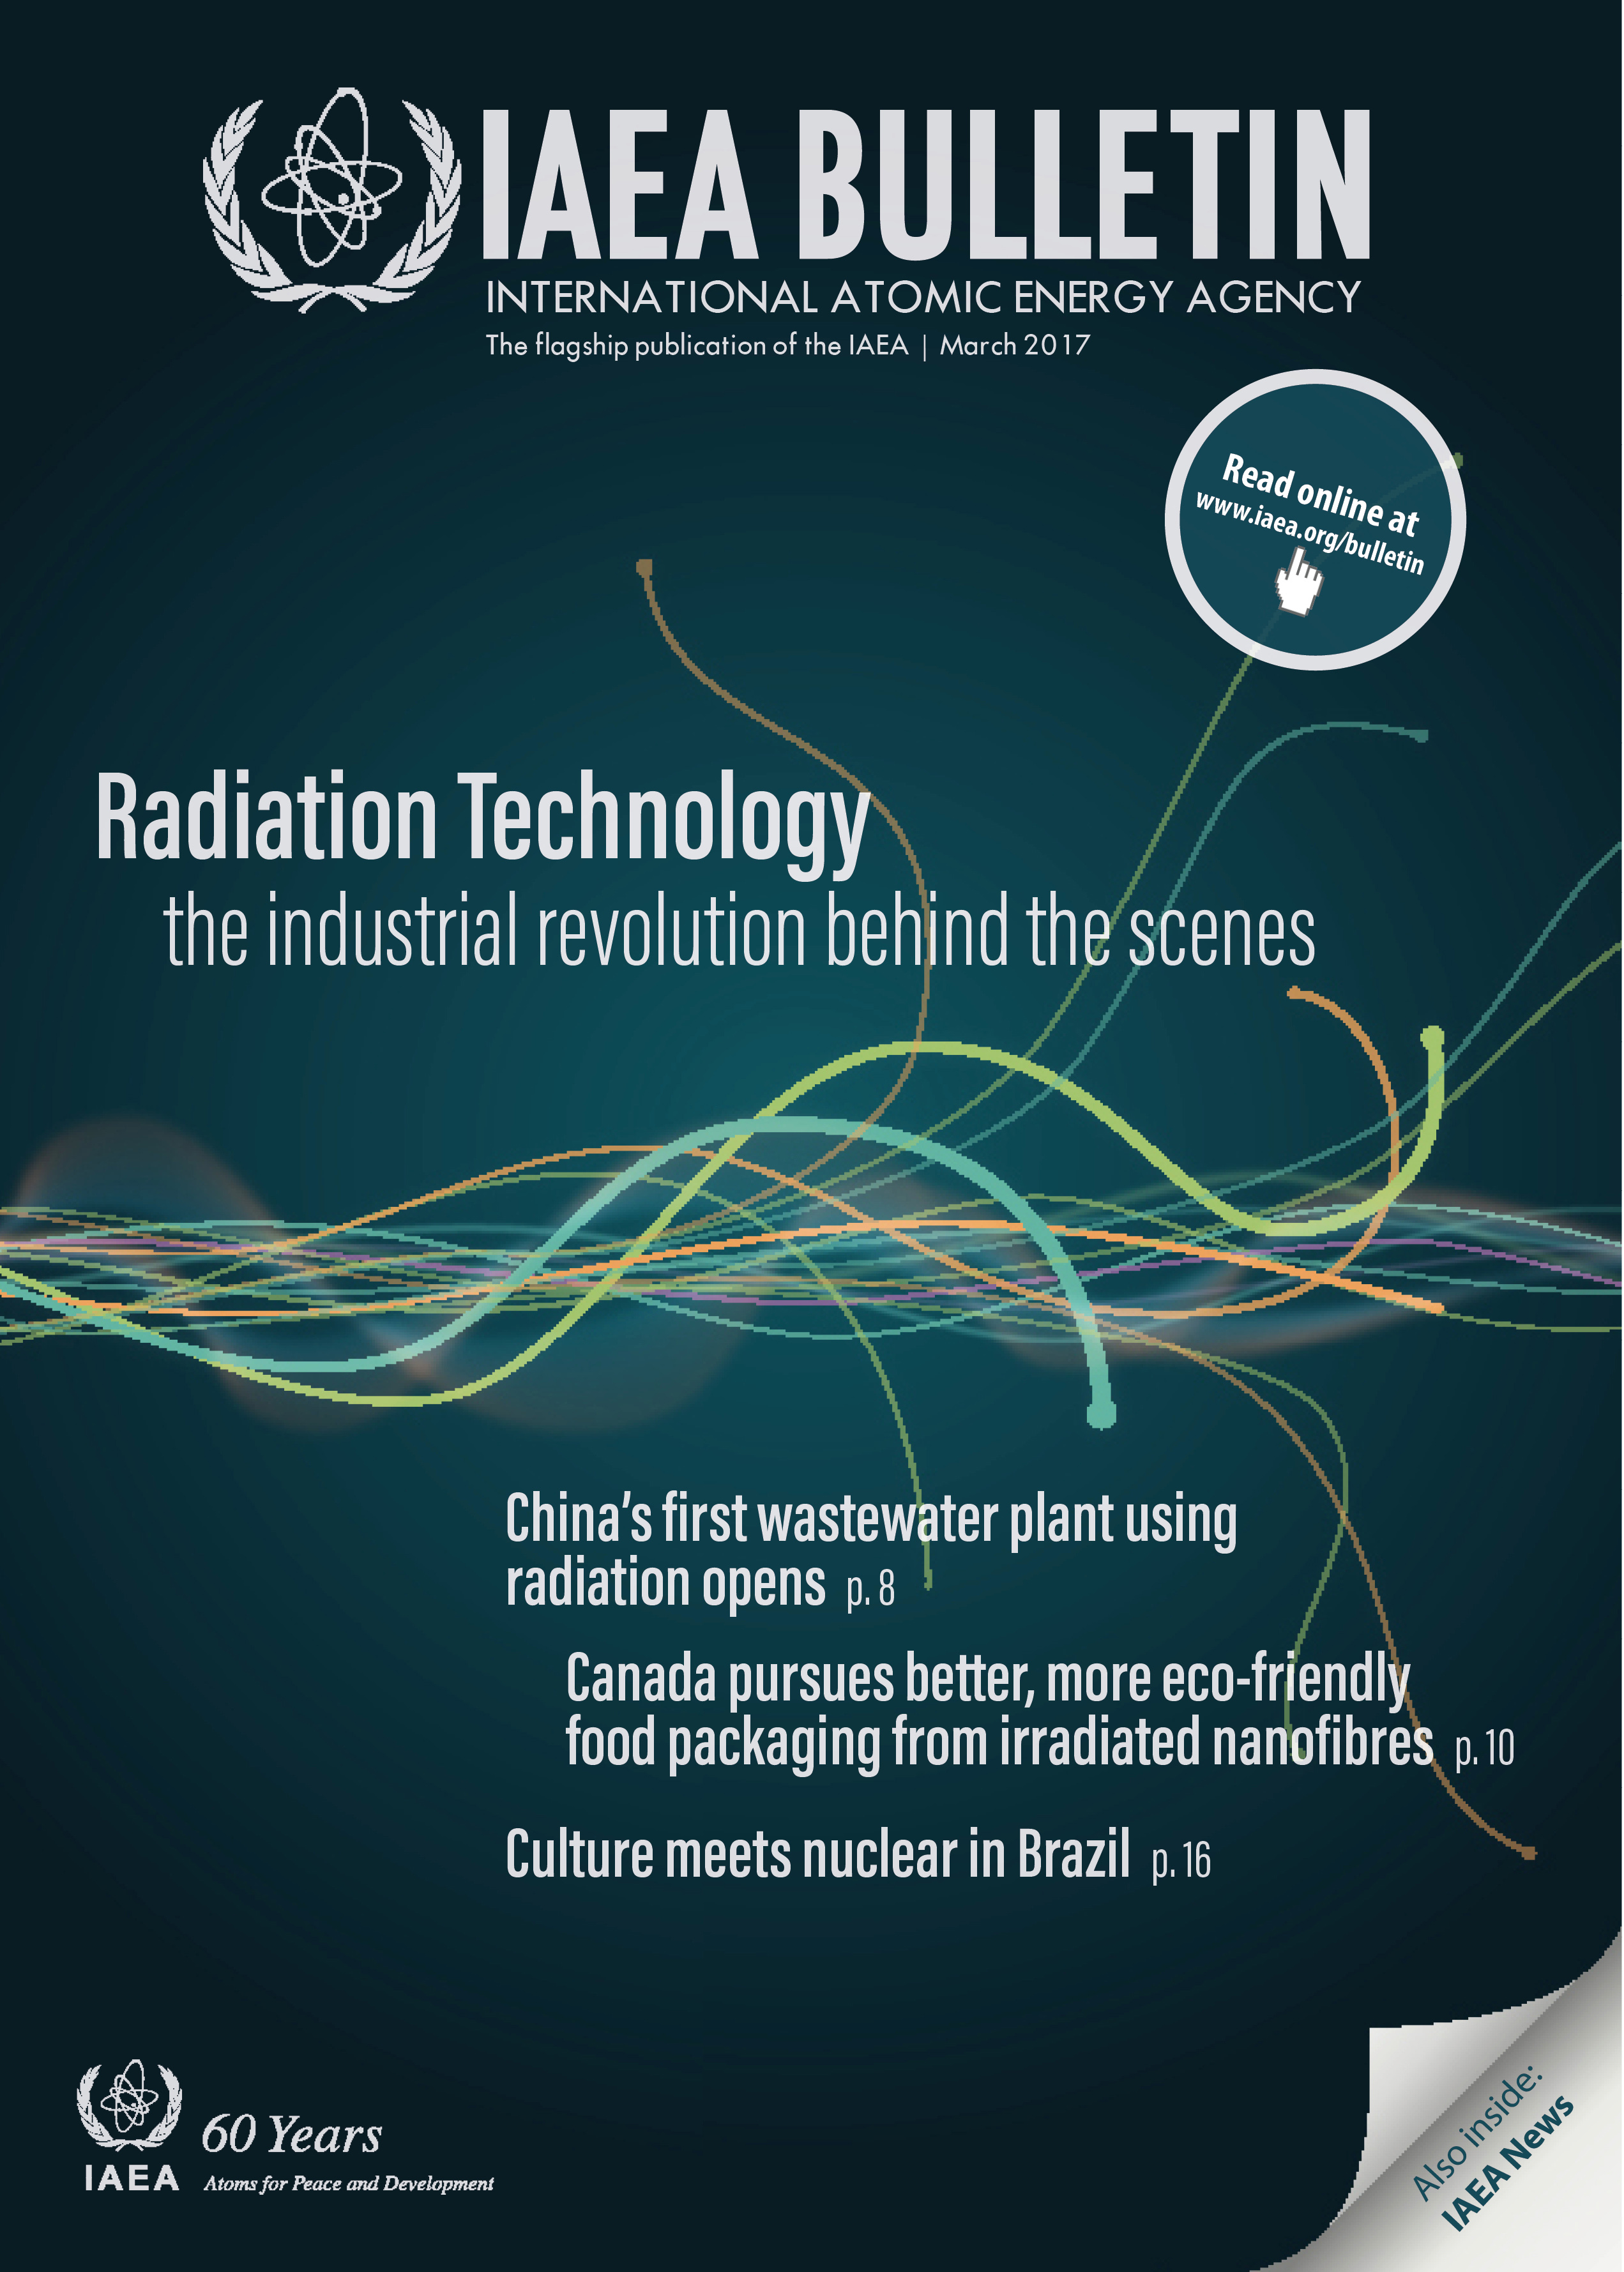 Radiation Technology: the industrial revolution behind the scenes